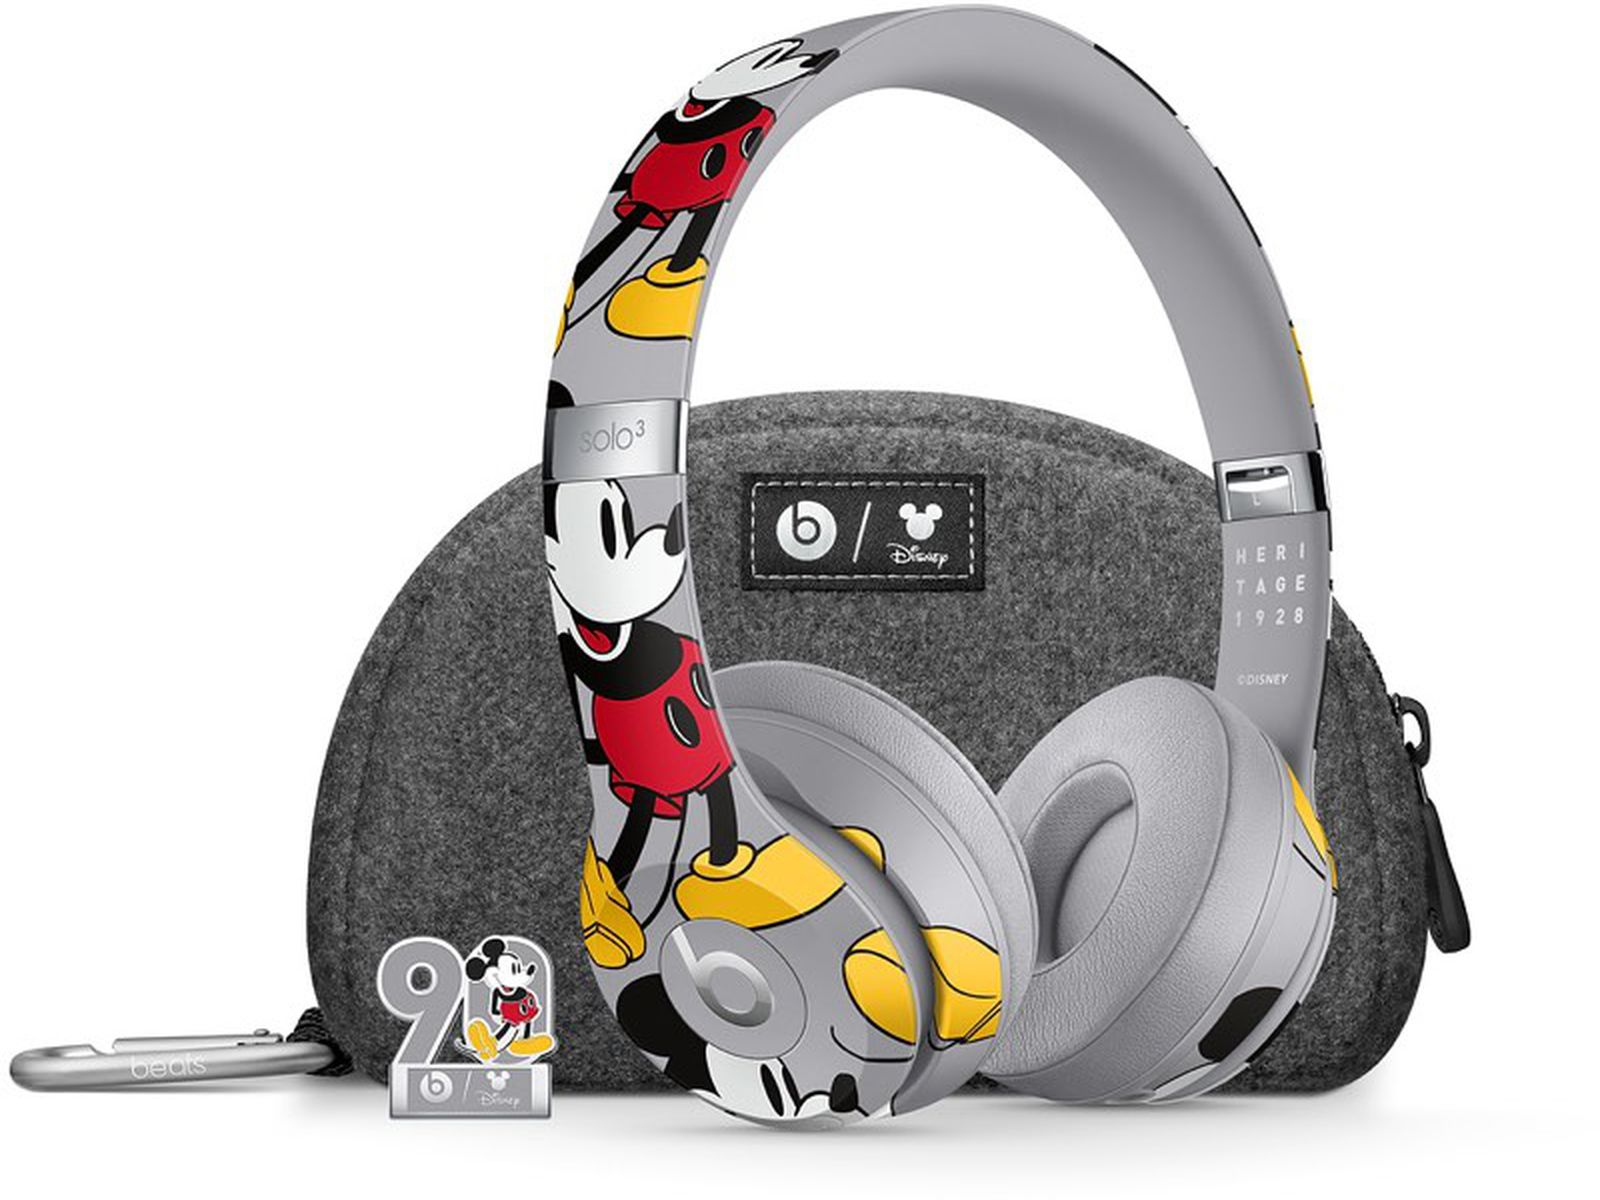 Apple Debuts Limited Edition Mickey Mouse Beats Solo 3 Wireless Headphones Created In Collaboration With Disney Macrumors